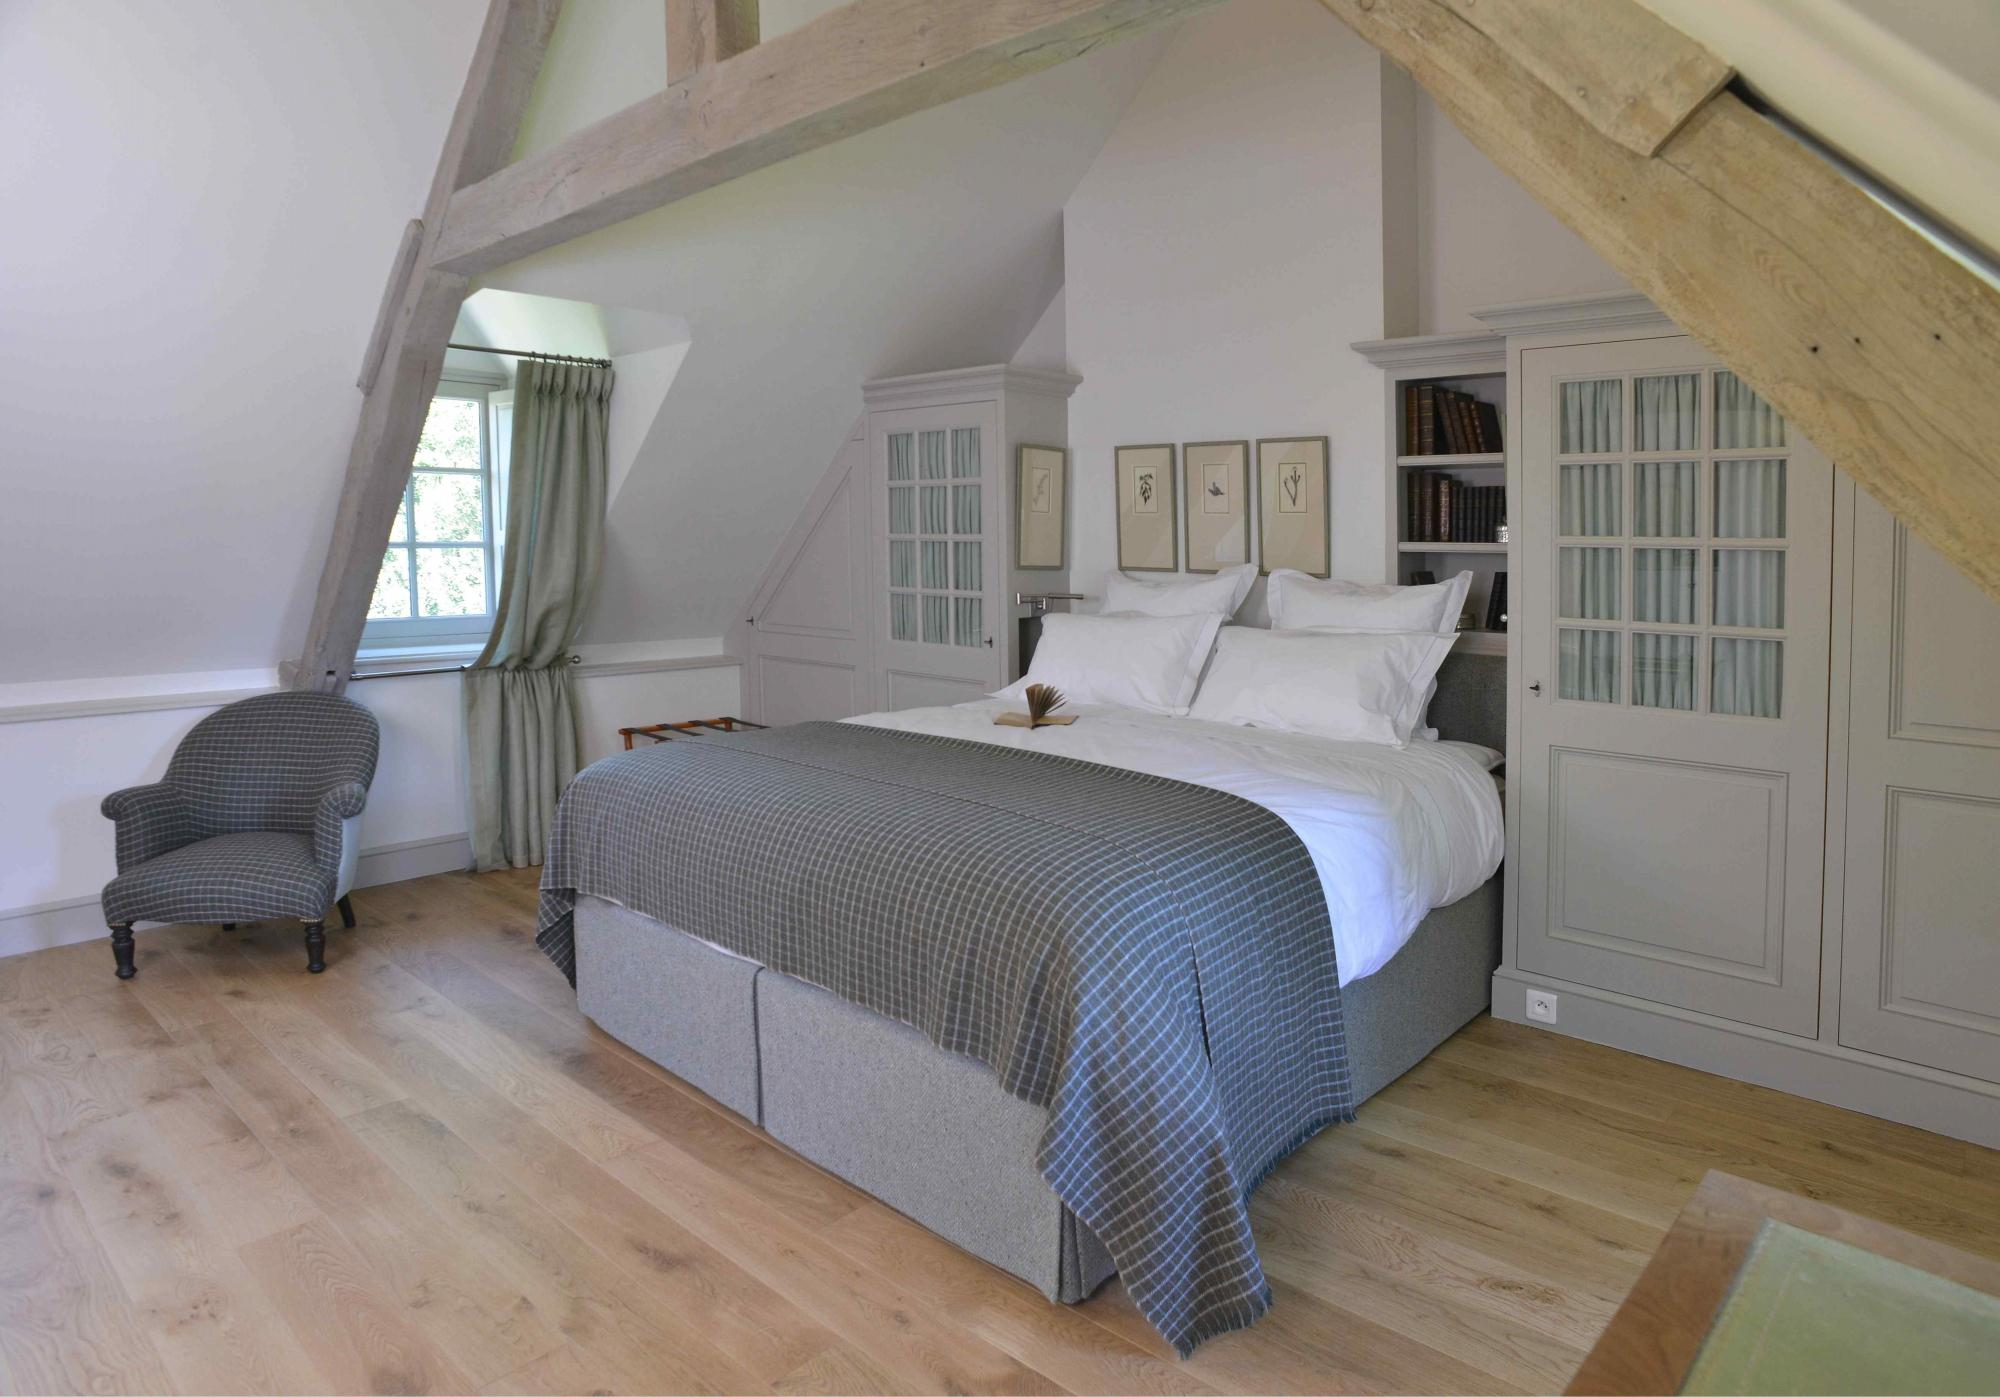 Chambres d 39 hotes le clos de grace honfleur france reviews tripadvisor for Chambre dhotel de luxe